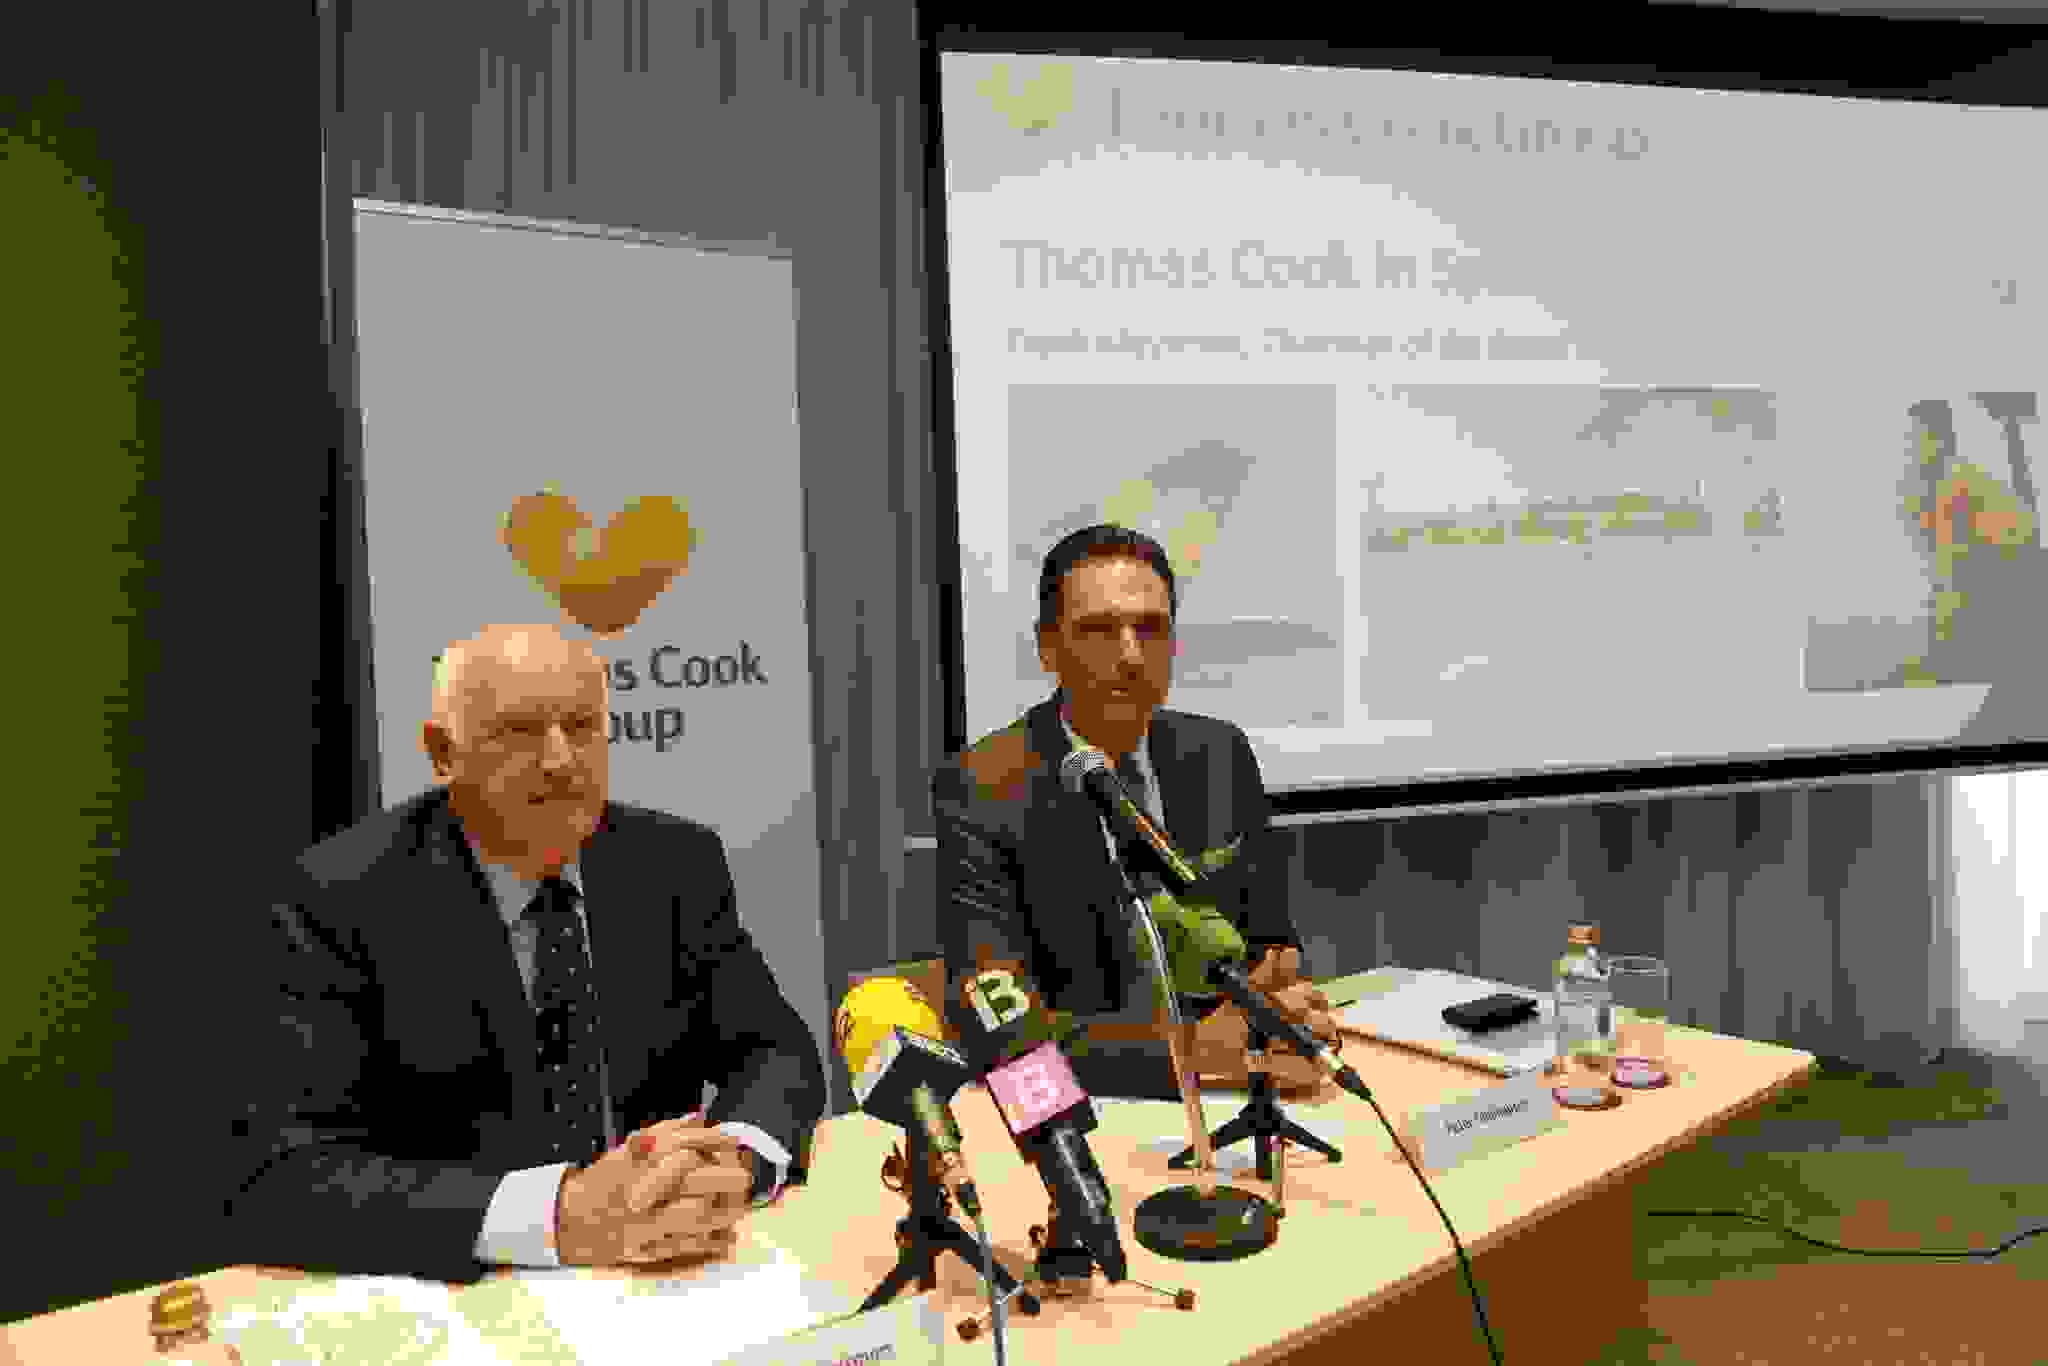 Thomas Cook 175-deel 3